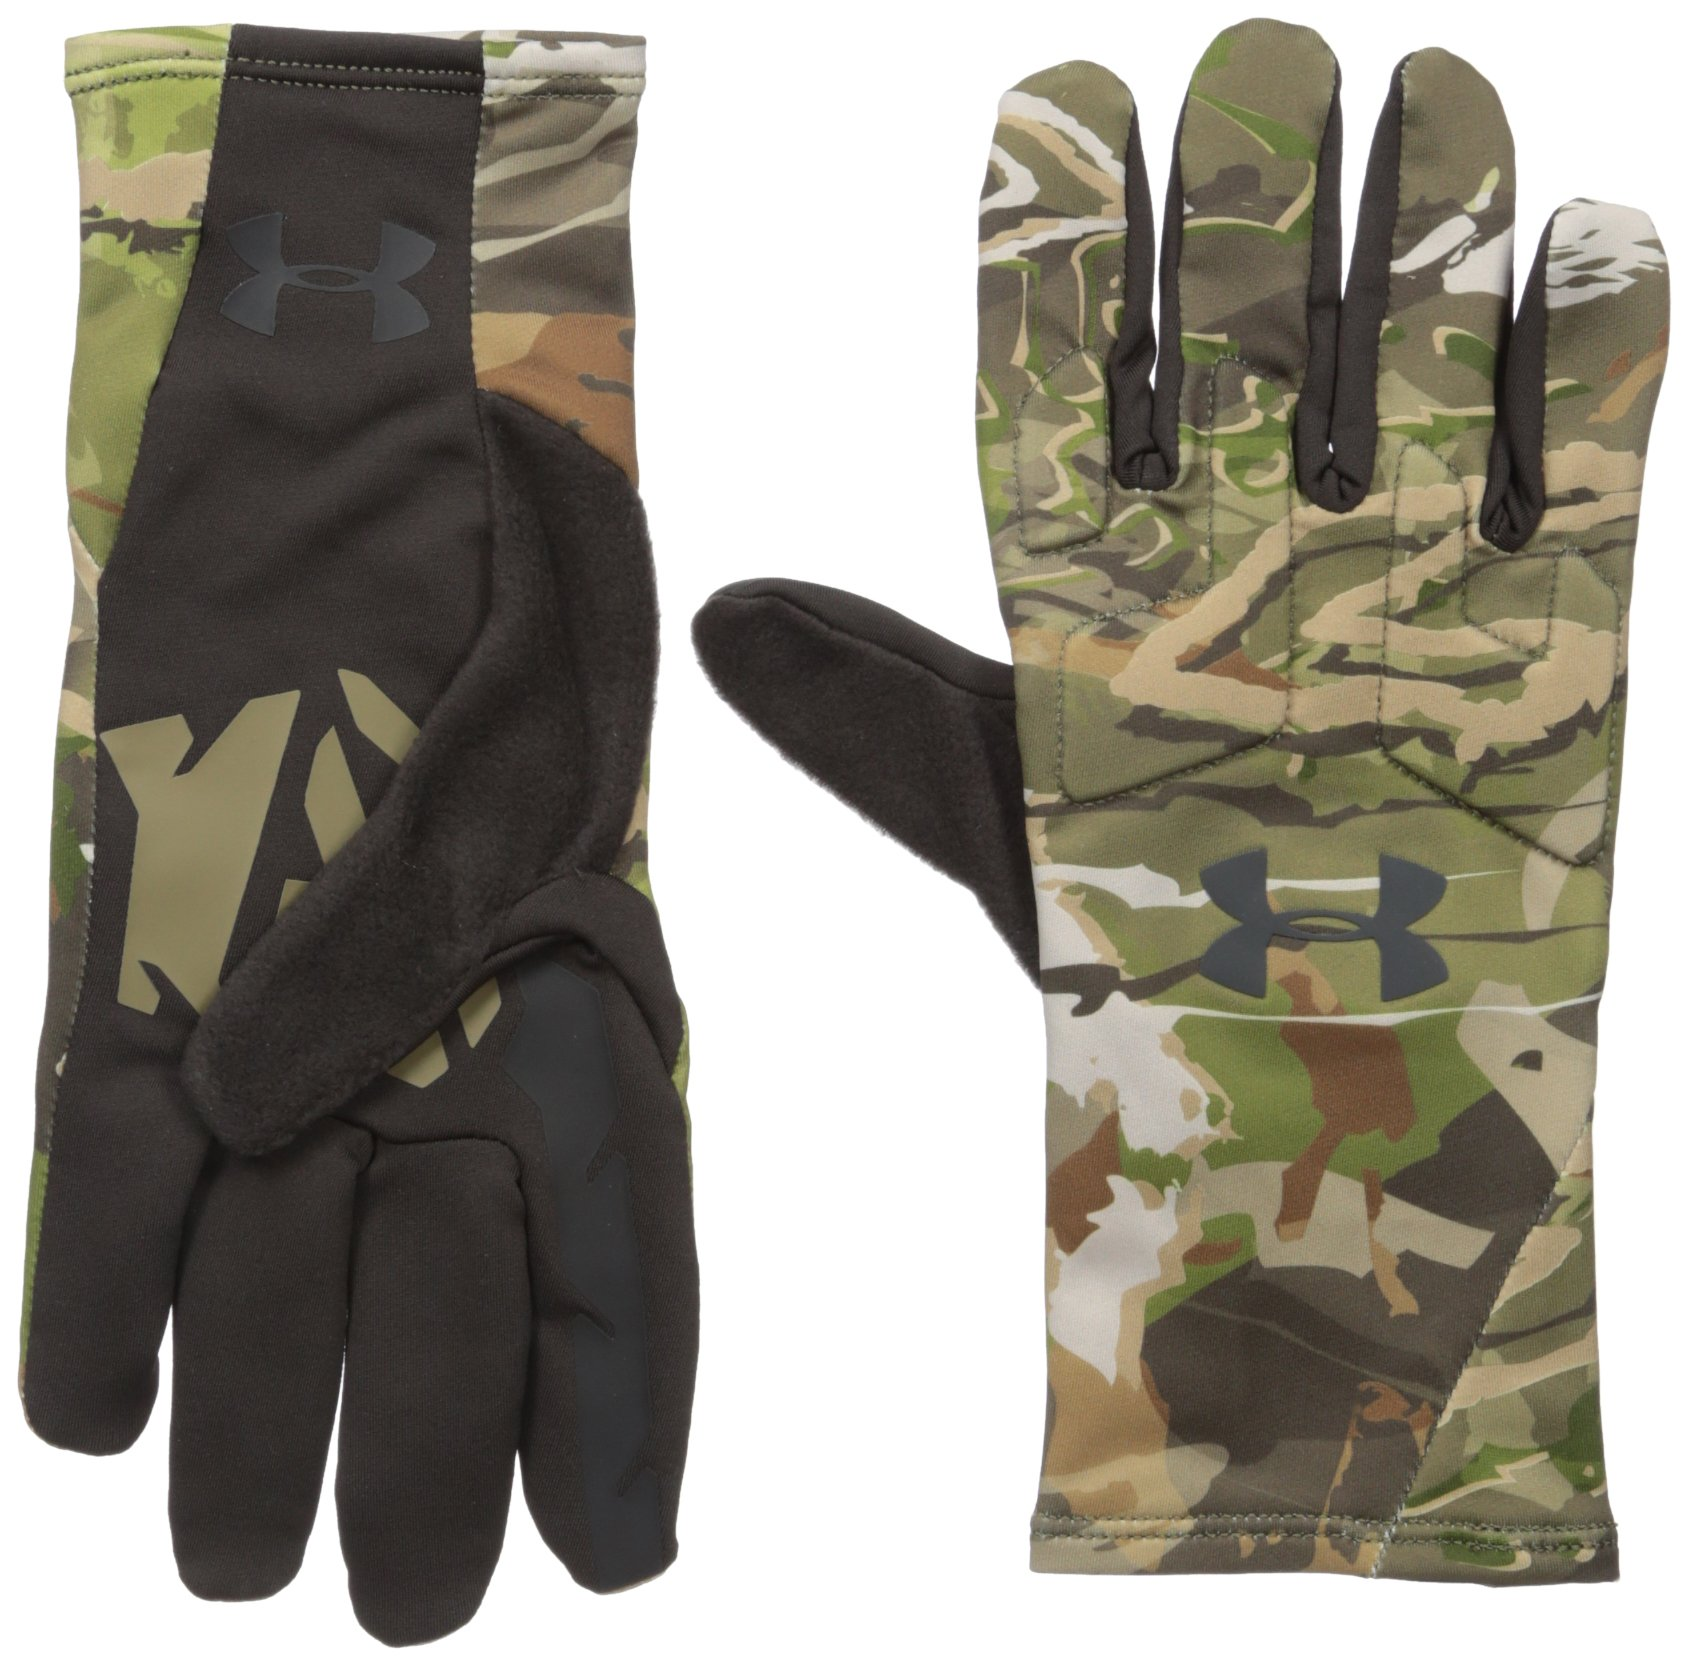 Under Armour Men's Scent Control 2.0 Hunting Gloves, Ridge Reaper Camo Forest (943)/Black, Medium